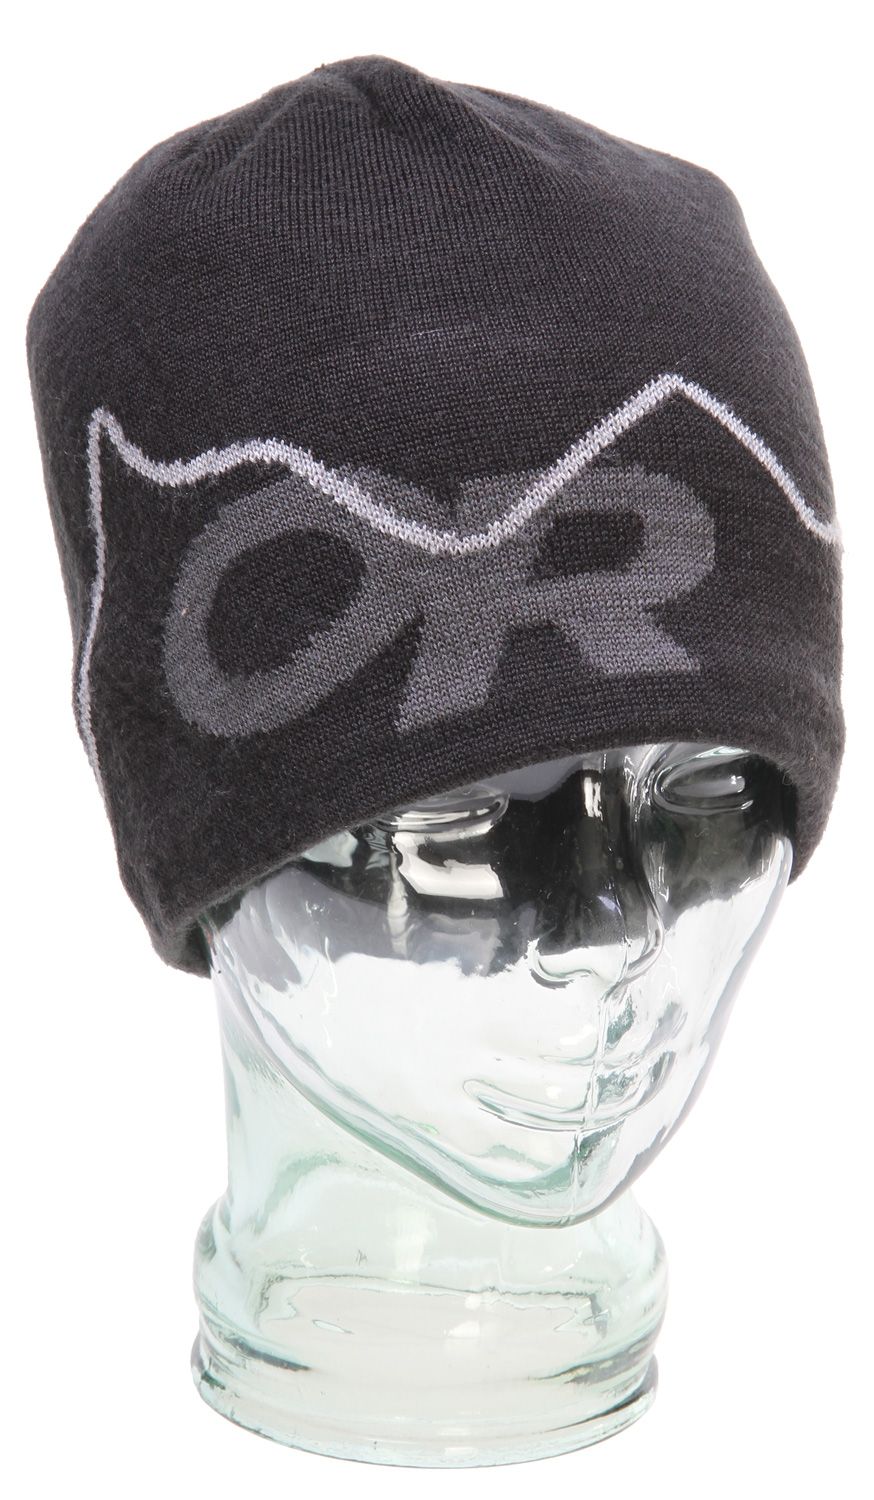 Key Features of the Outdoor Research Or Storm Beanie: 30% wool/70% acrylic WINDSTOPPER Technical Fleece lining - $13.97